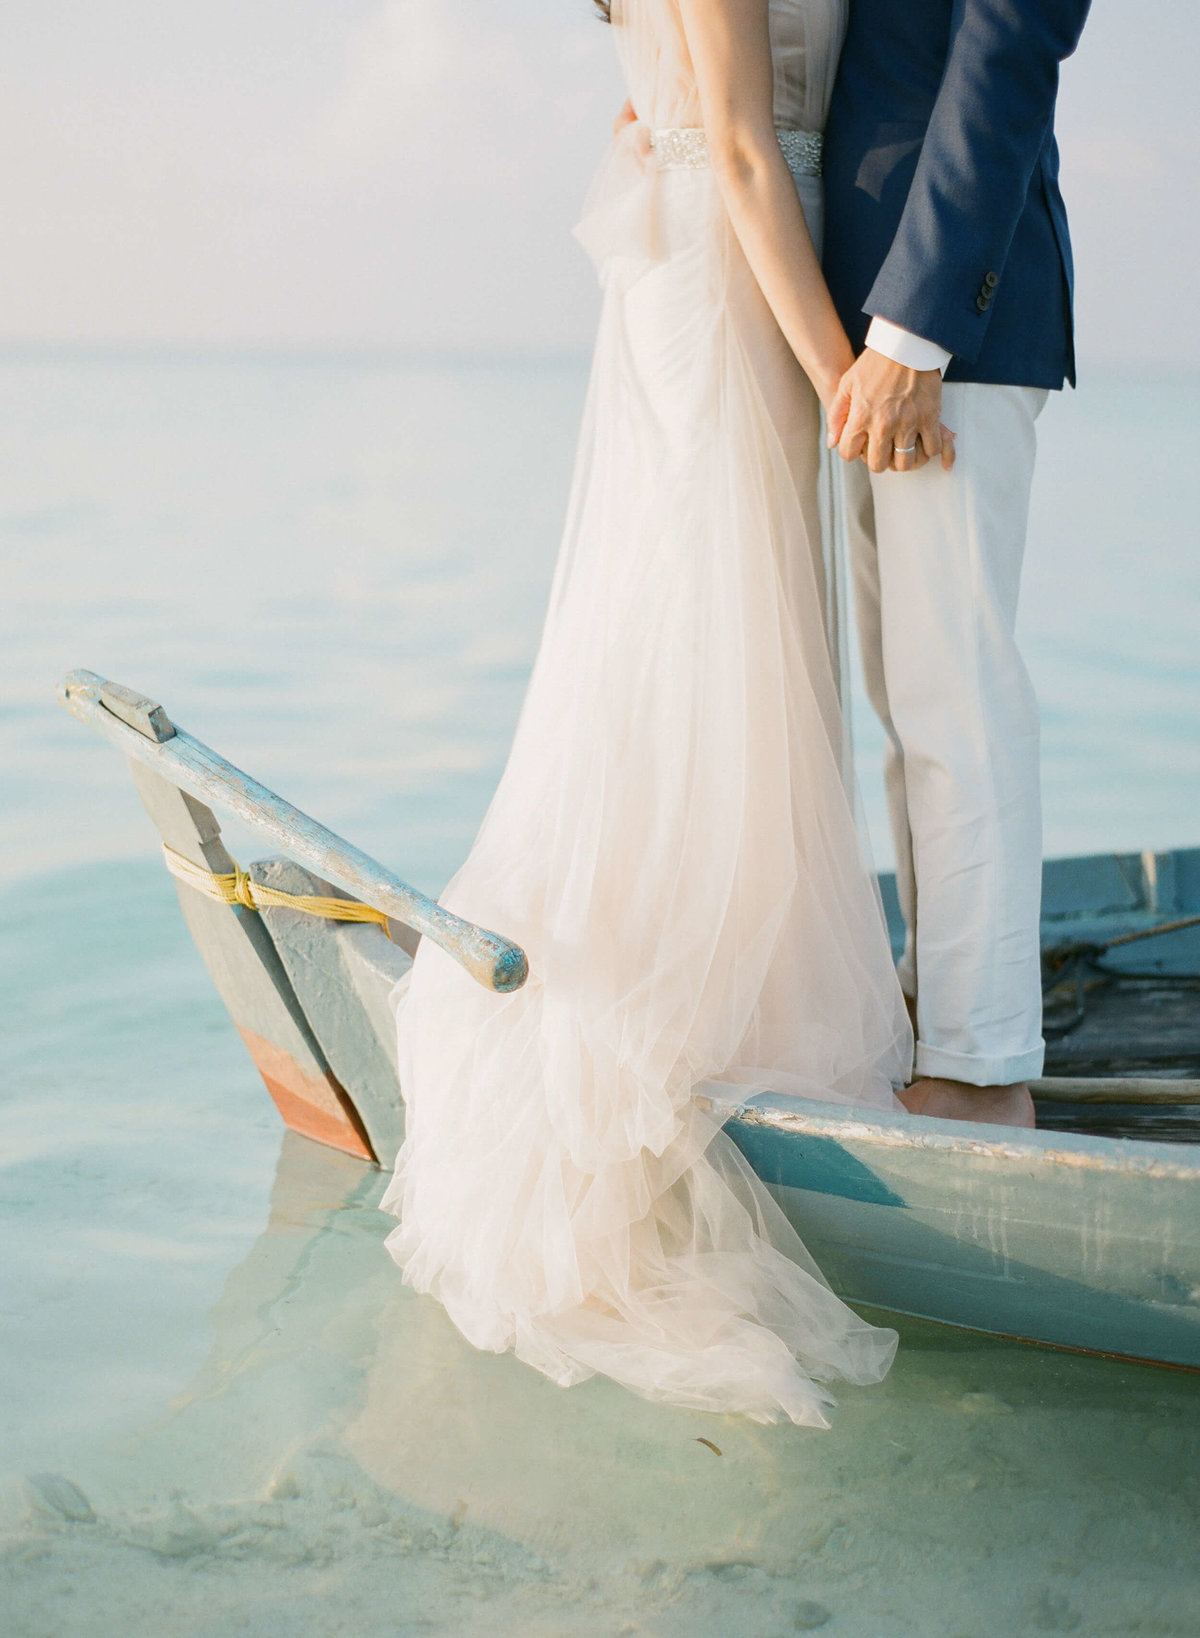 35-KTMerry-destinationwedding-Maldives-beachfront-portrait